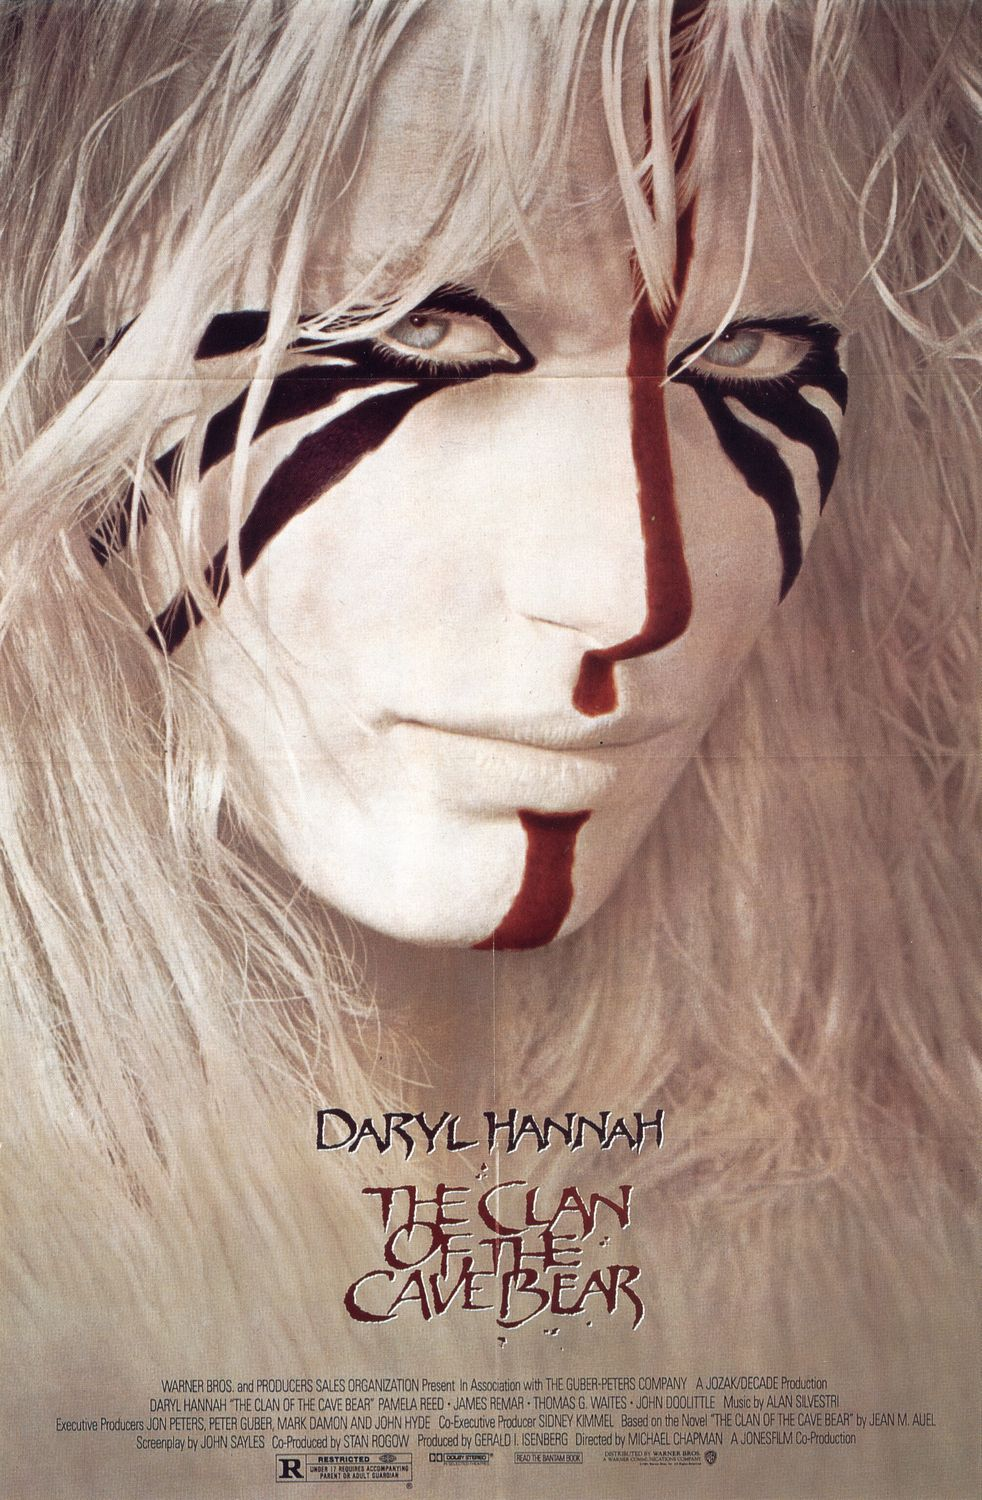 Cro Magnon: odissea nella preistoria - Clan of the Cave Bear 1986 by Michael Chapman - Cast: Daryl Hannah, Pamela Reed, James Remar, Thomas G. Waites